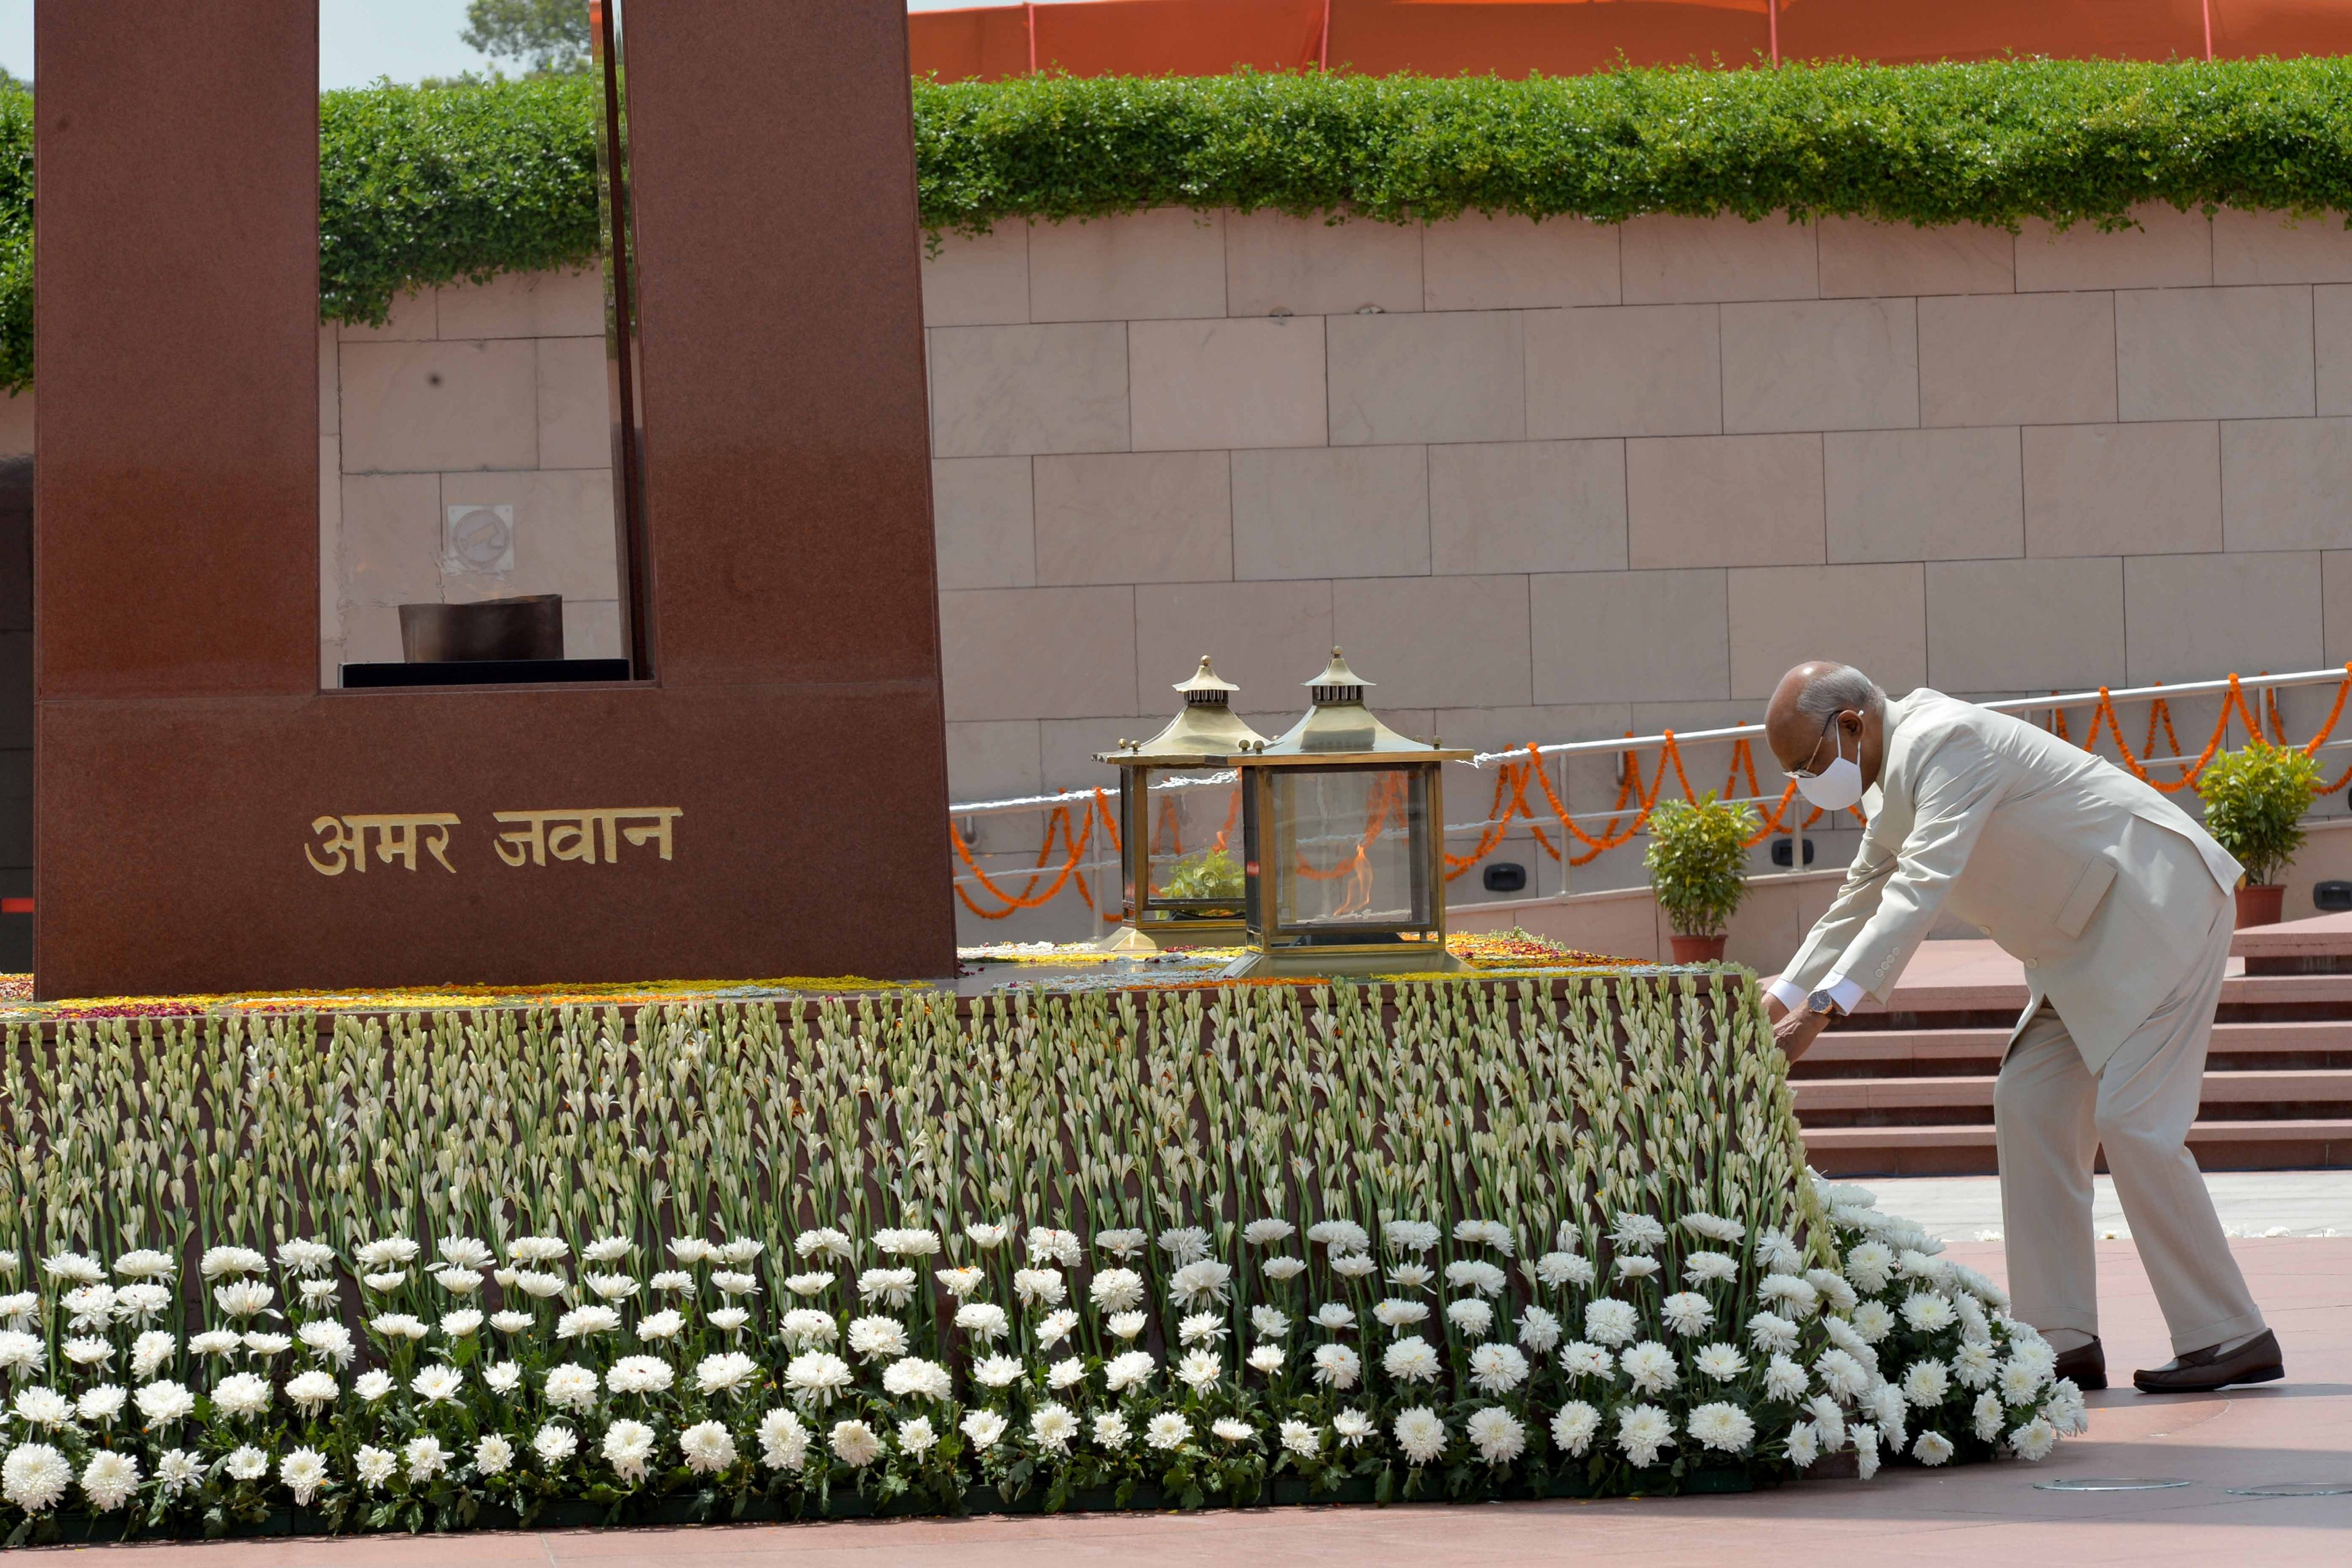 President Ram Nath Kovind paid homage at National War Memorial on the occasion of 75th Independence Day.